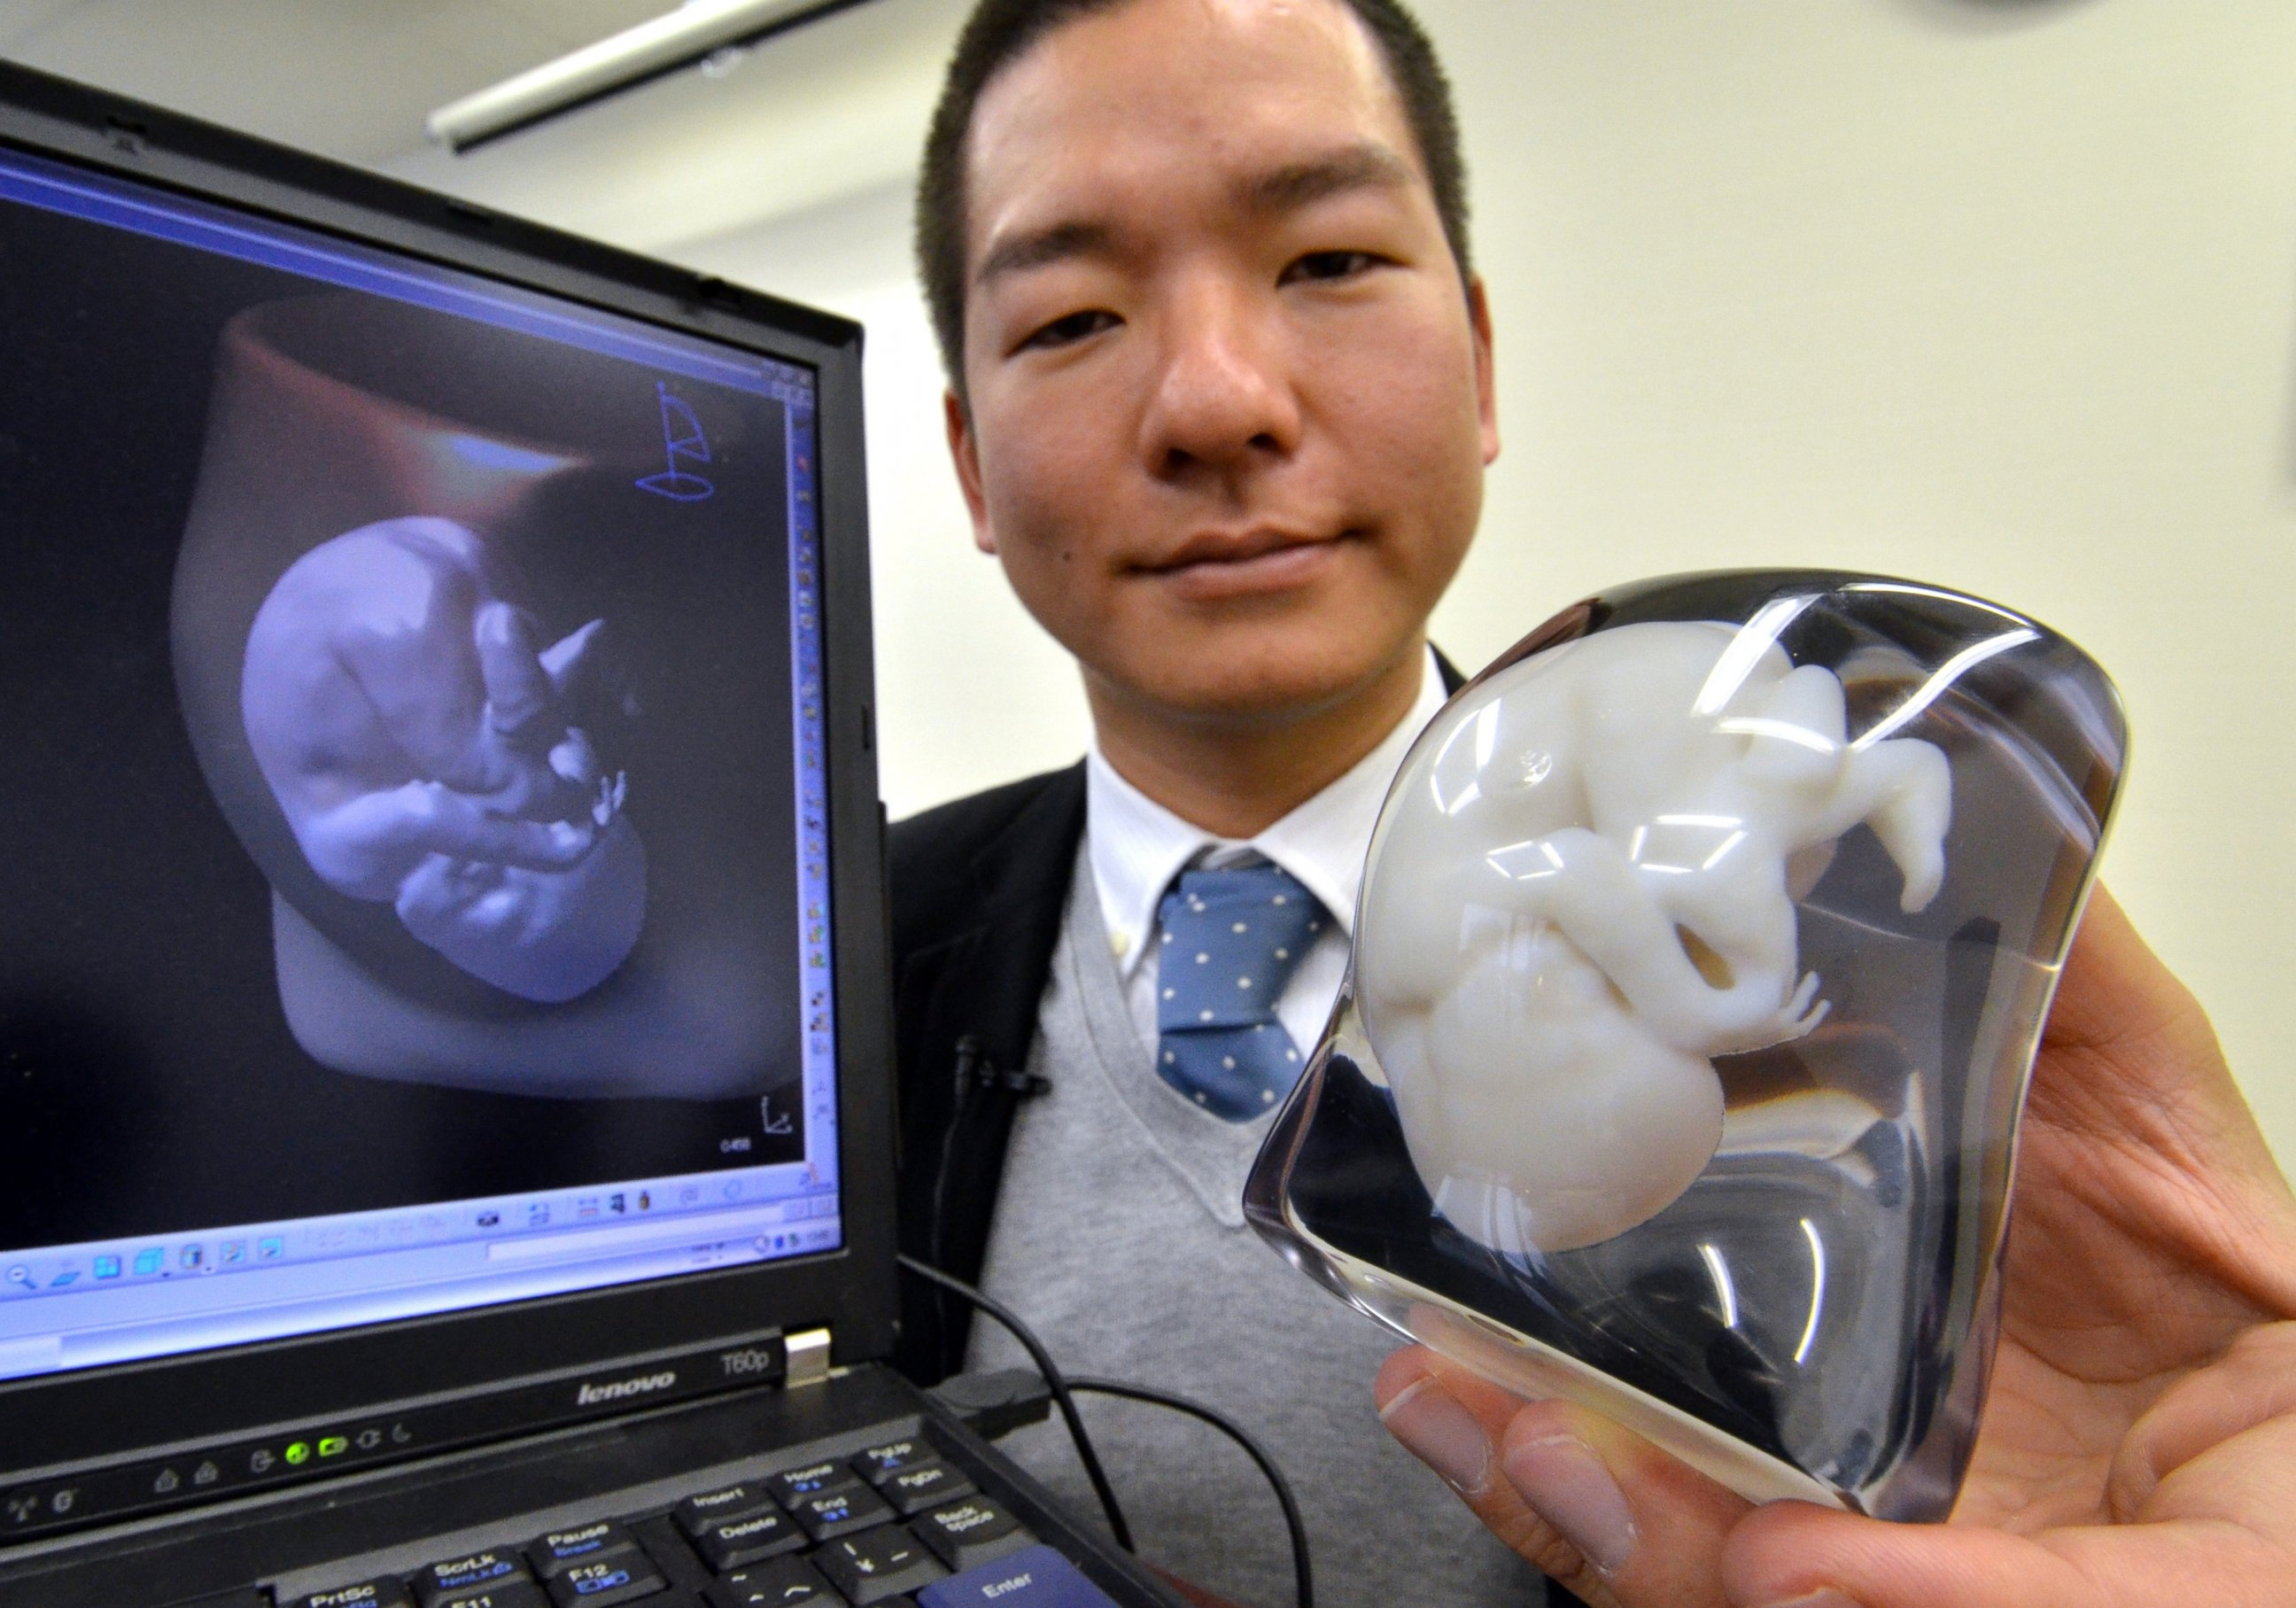 GTY 3d fetus jef 130722 3 D Printer Makes Model Memento of Fetus for Parents